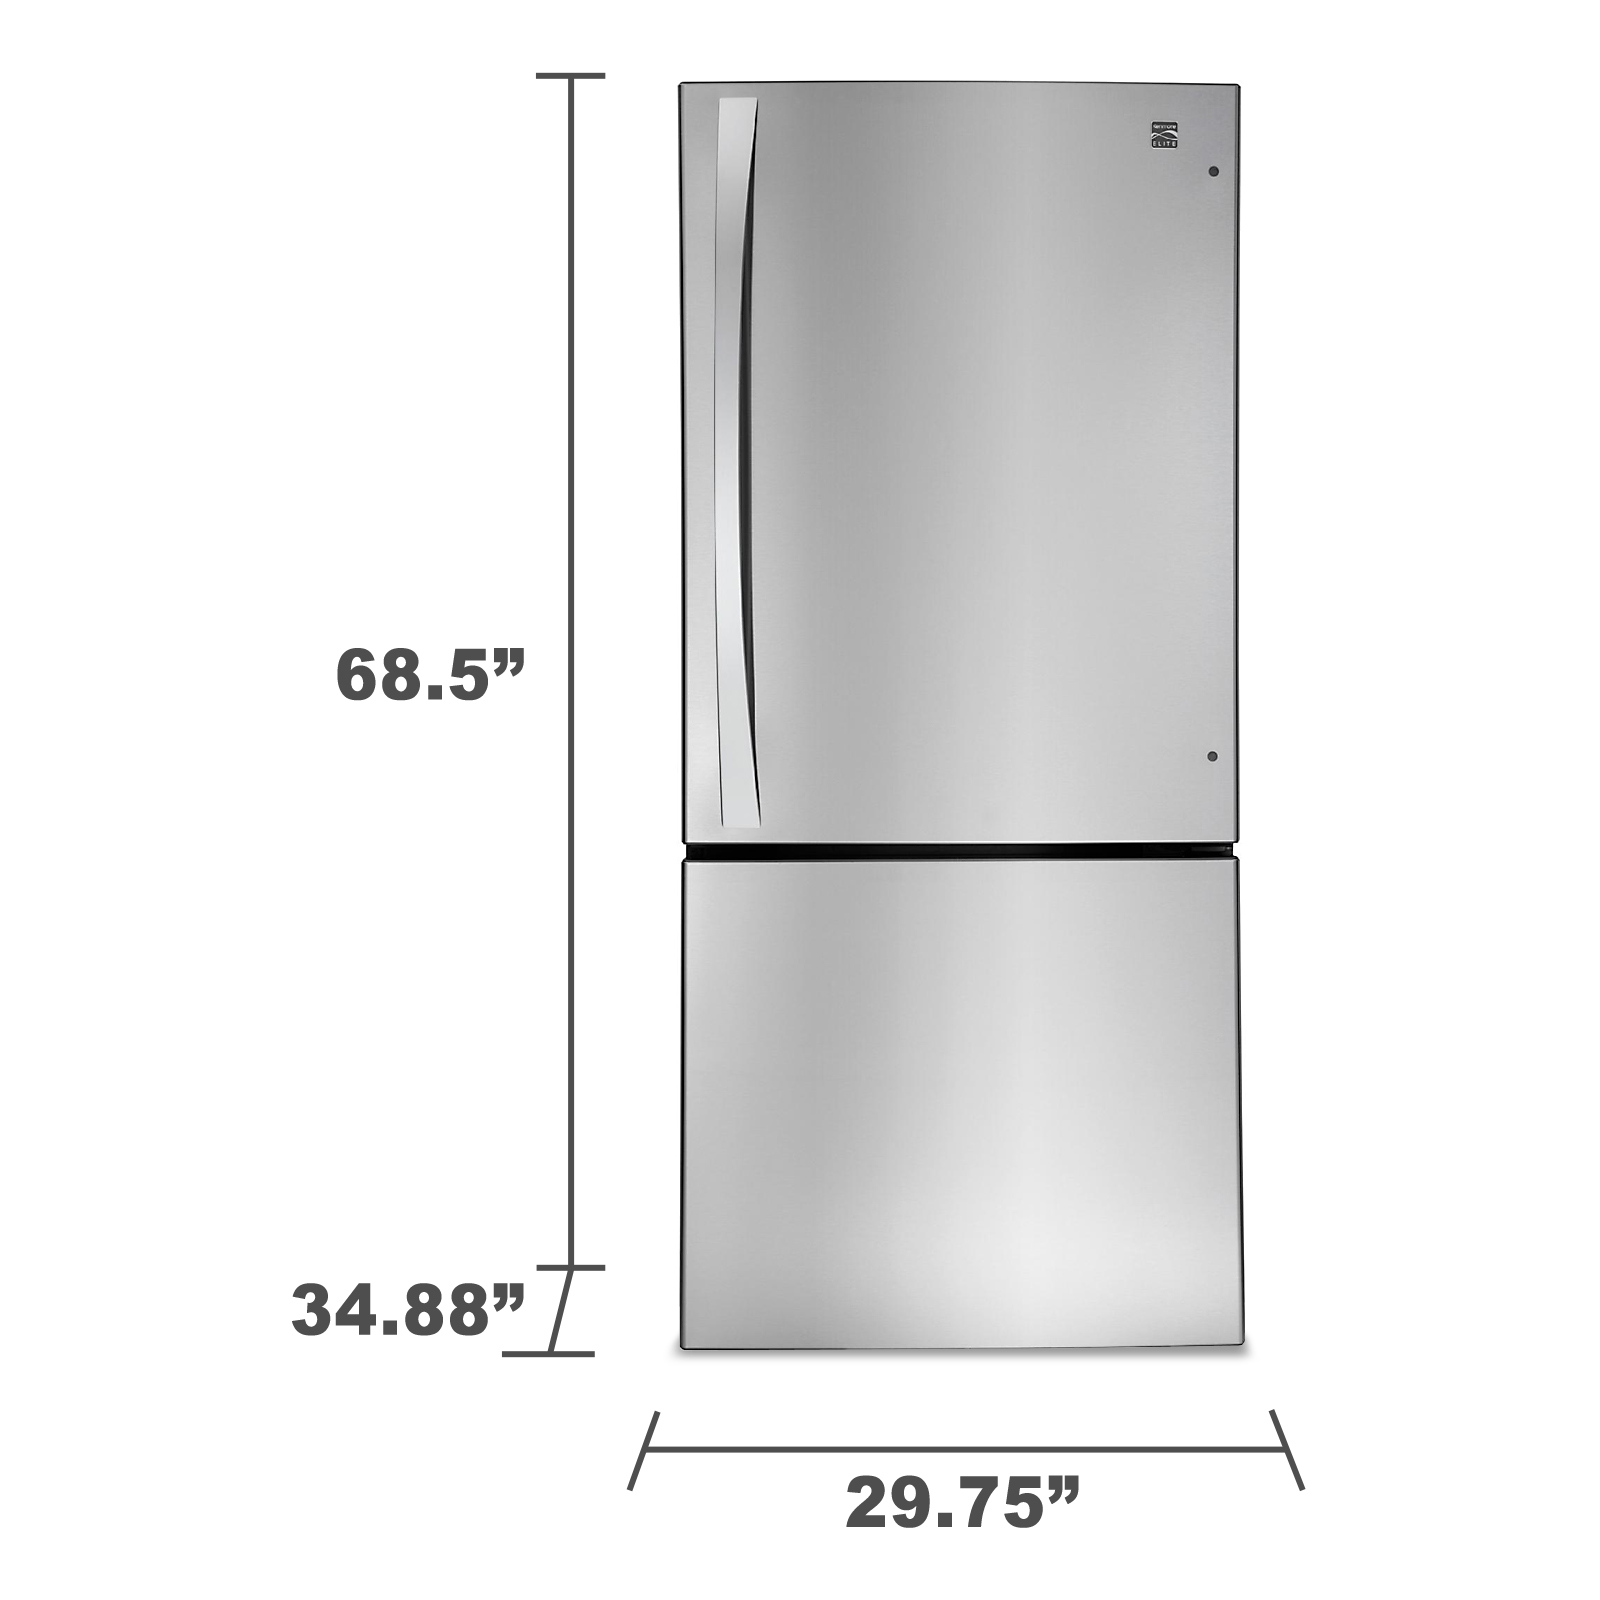 Kenmore Elite 22.1 cu. ft. Bottom-Freezer Refrigerator - Stainless Steel